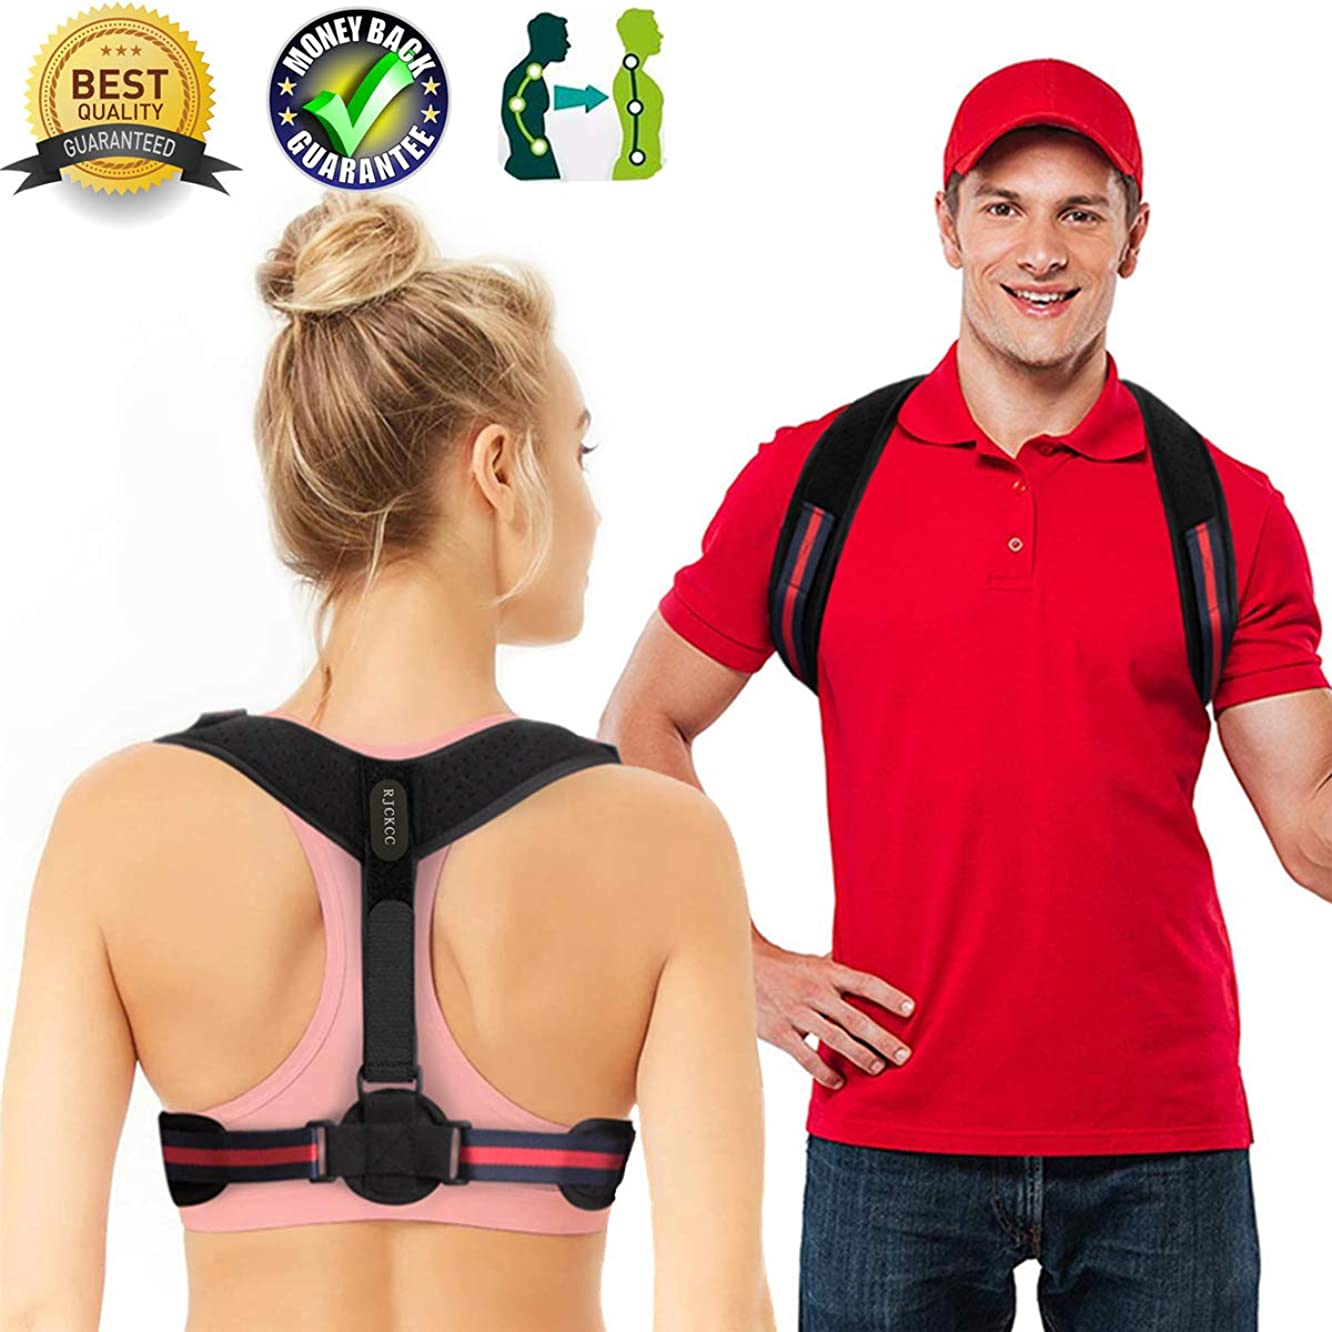 Posture Corrector for Women Men Upper Back Brace Posture Support Best Upright Go Posture Trainer Clavicle Brace Slouching Kyphosis Spine Corrector Scoliosis Under (Posture Corrector, 26